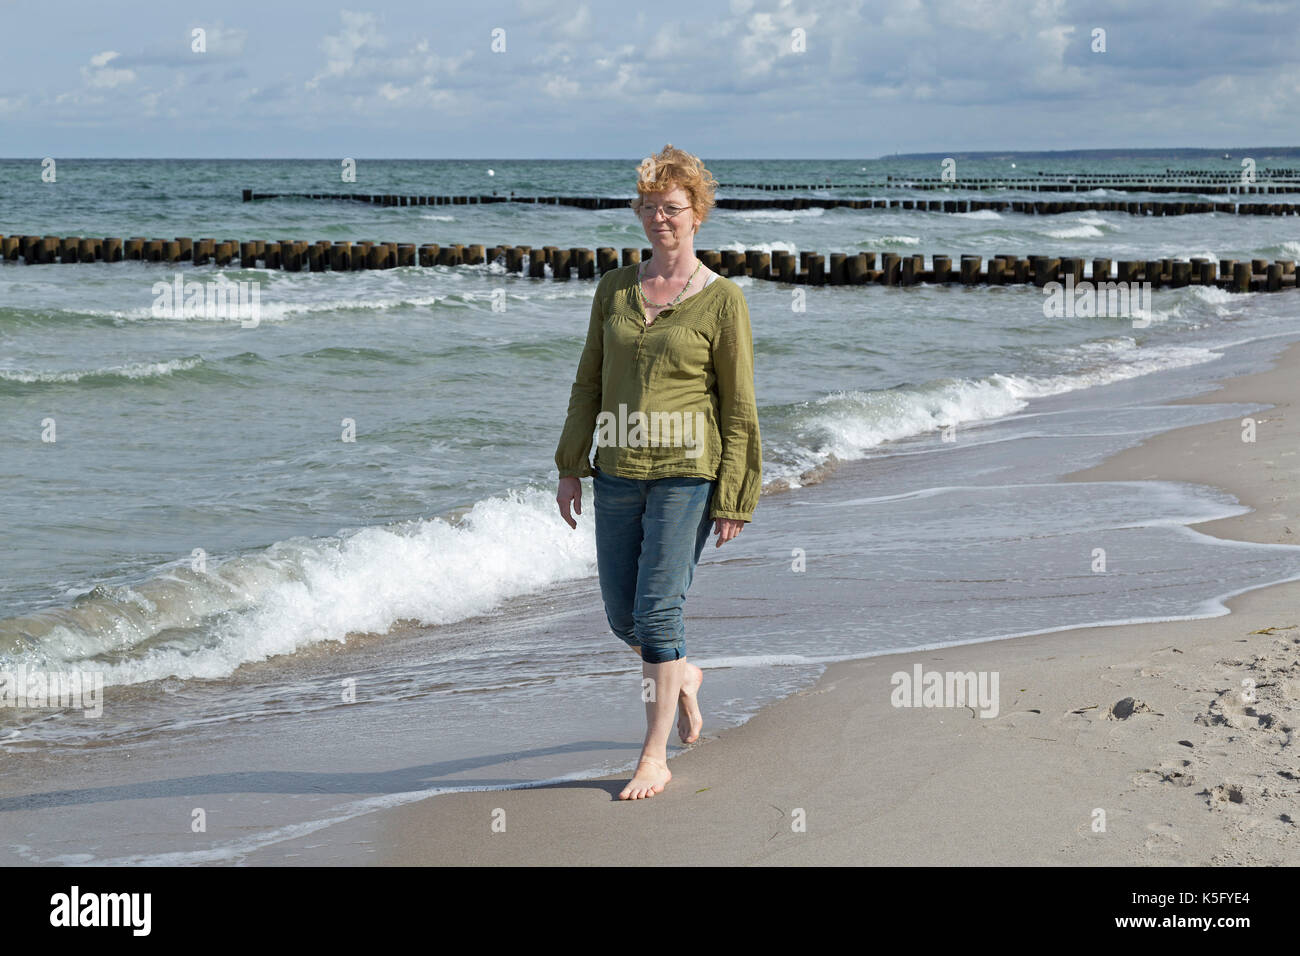 woman at the beach, Ahrenshoop, Fischland, Mecklenburg-West Pomerania, Germany - Stock Image